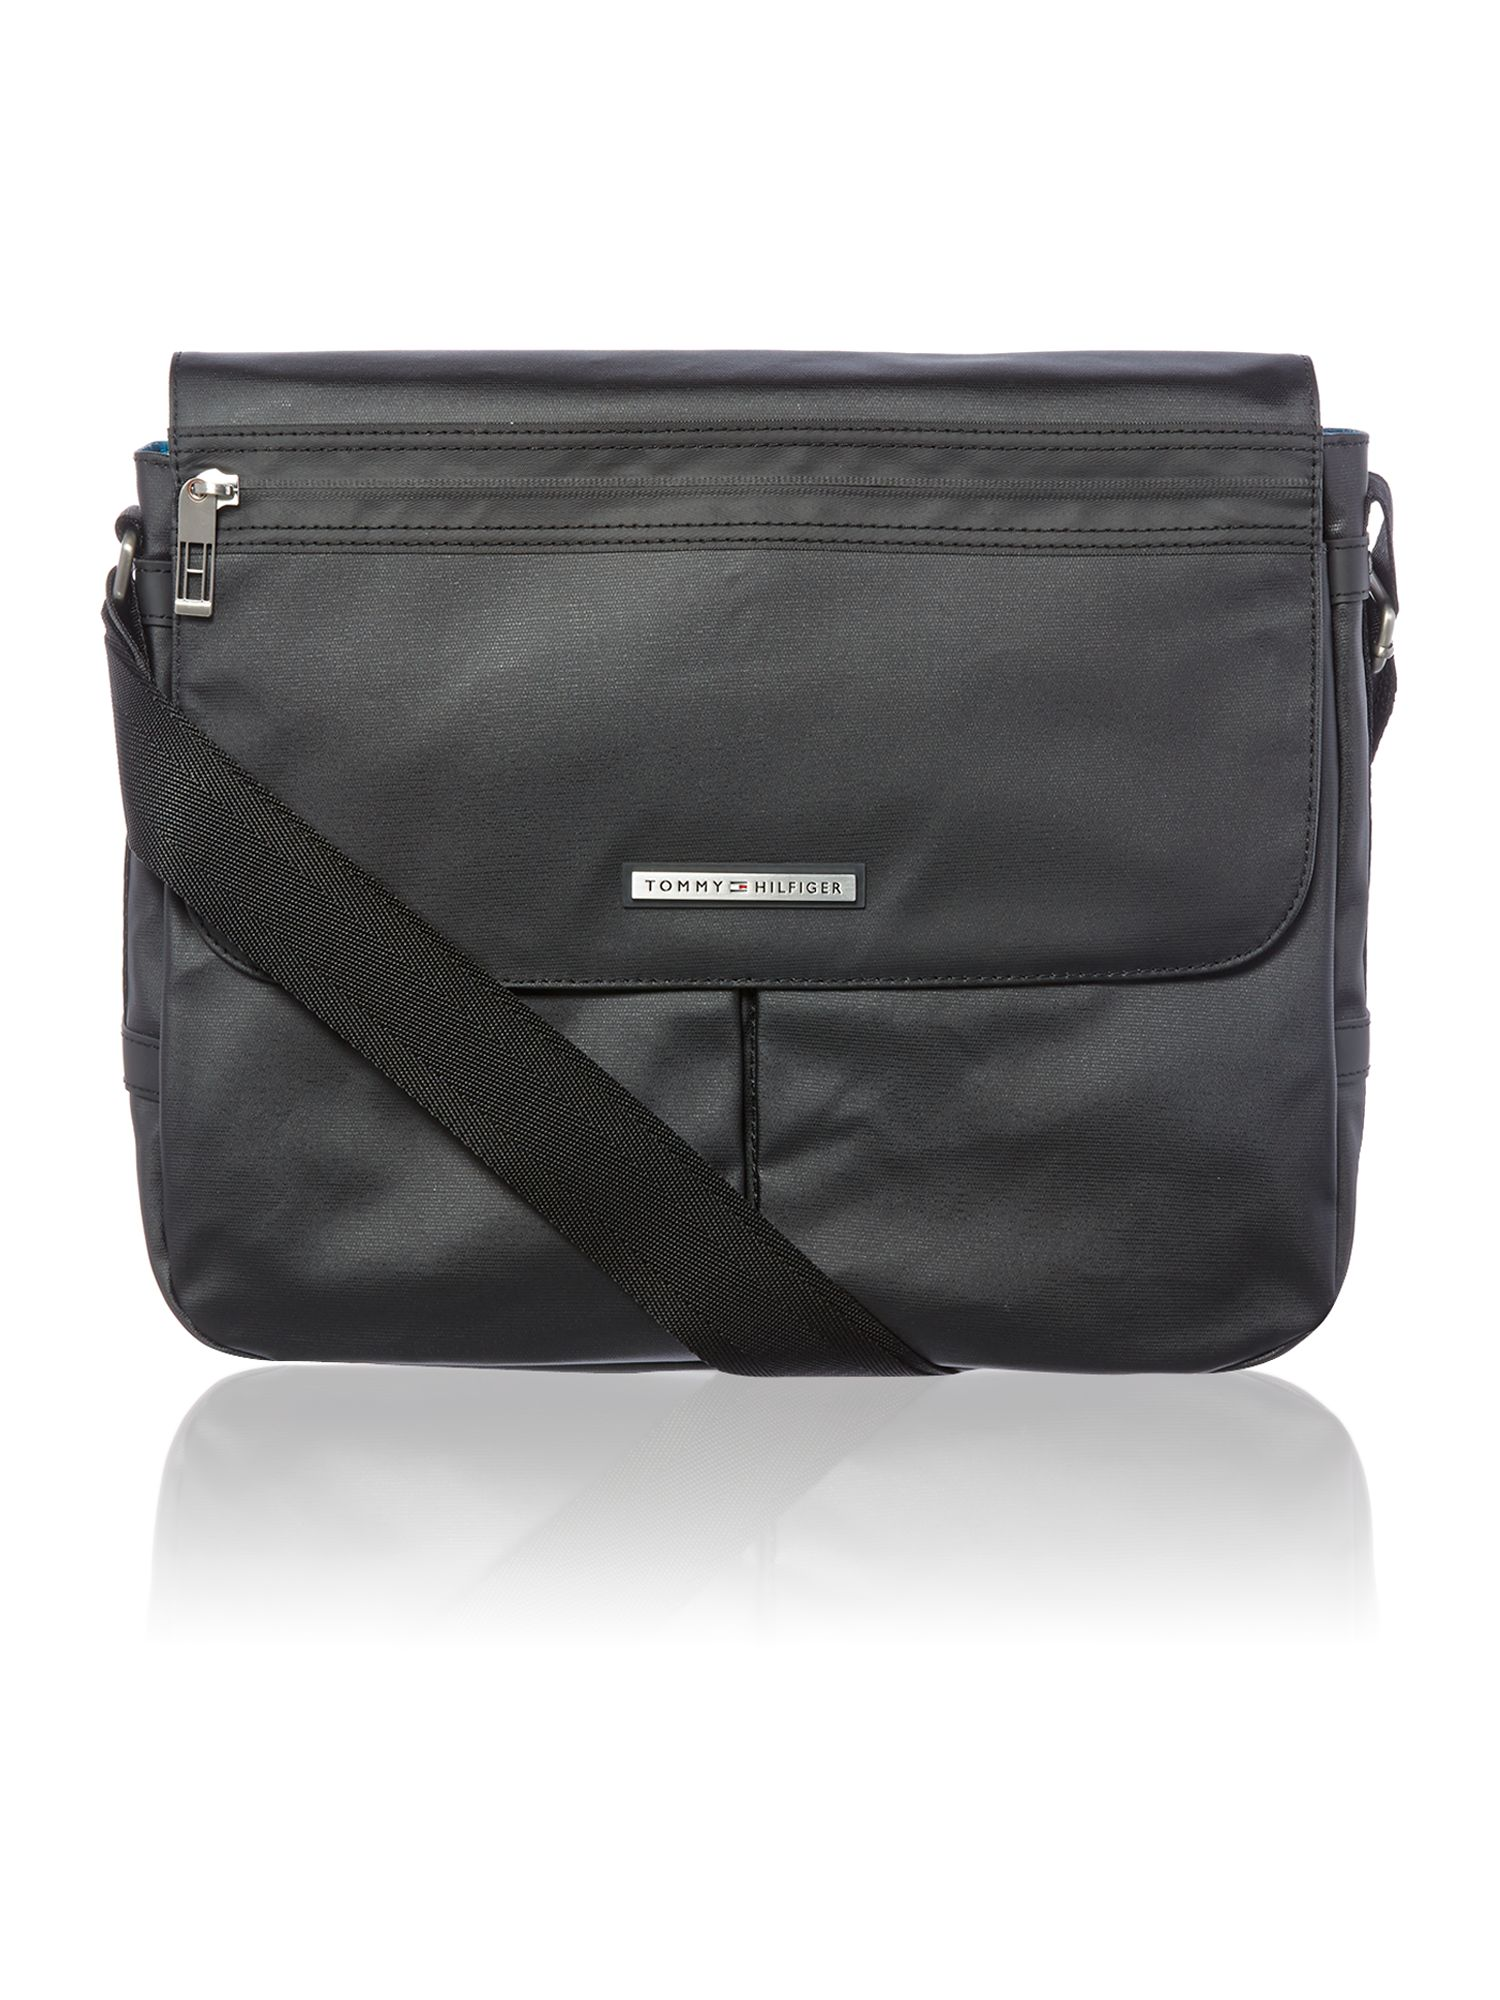 Sheldon messenger bag